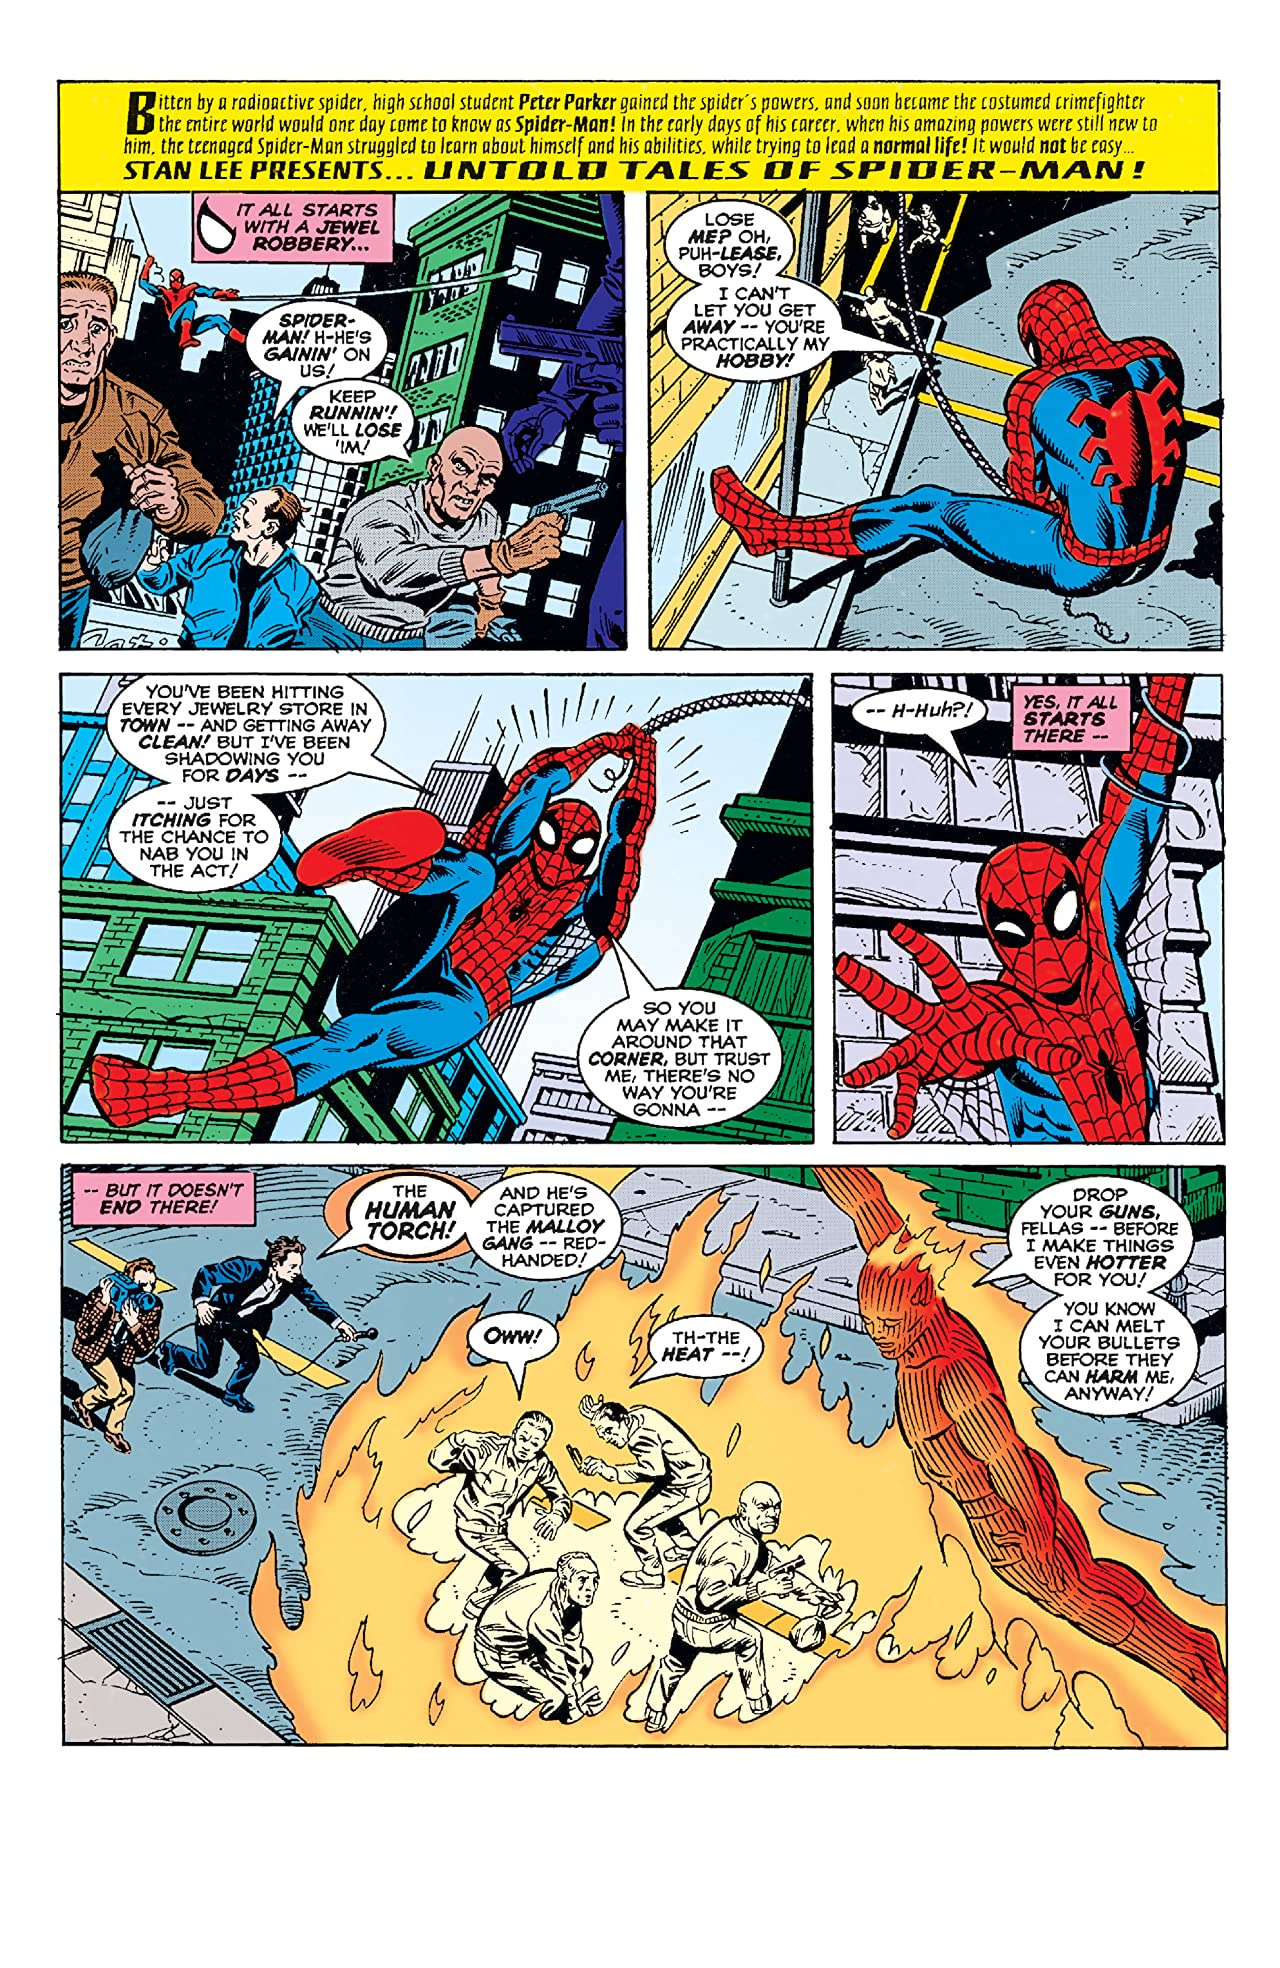 Untold Tales of Spider-Man Annual 1996 #1